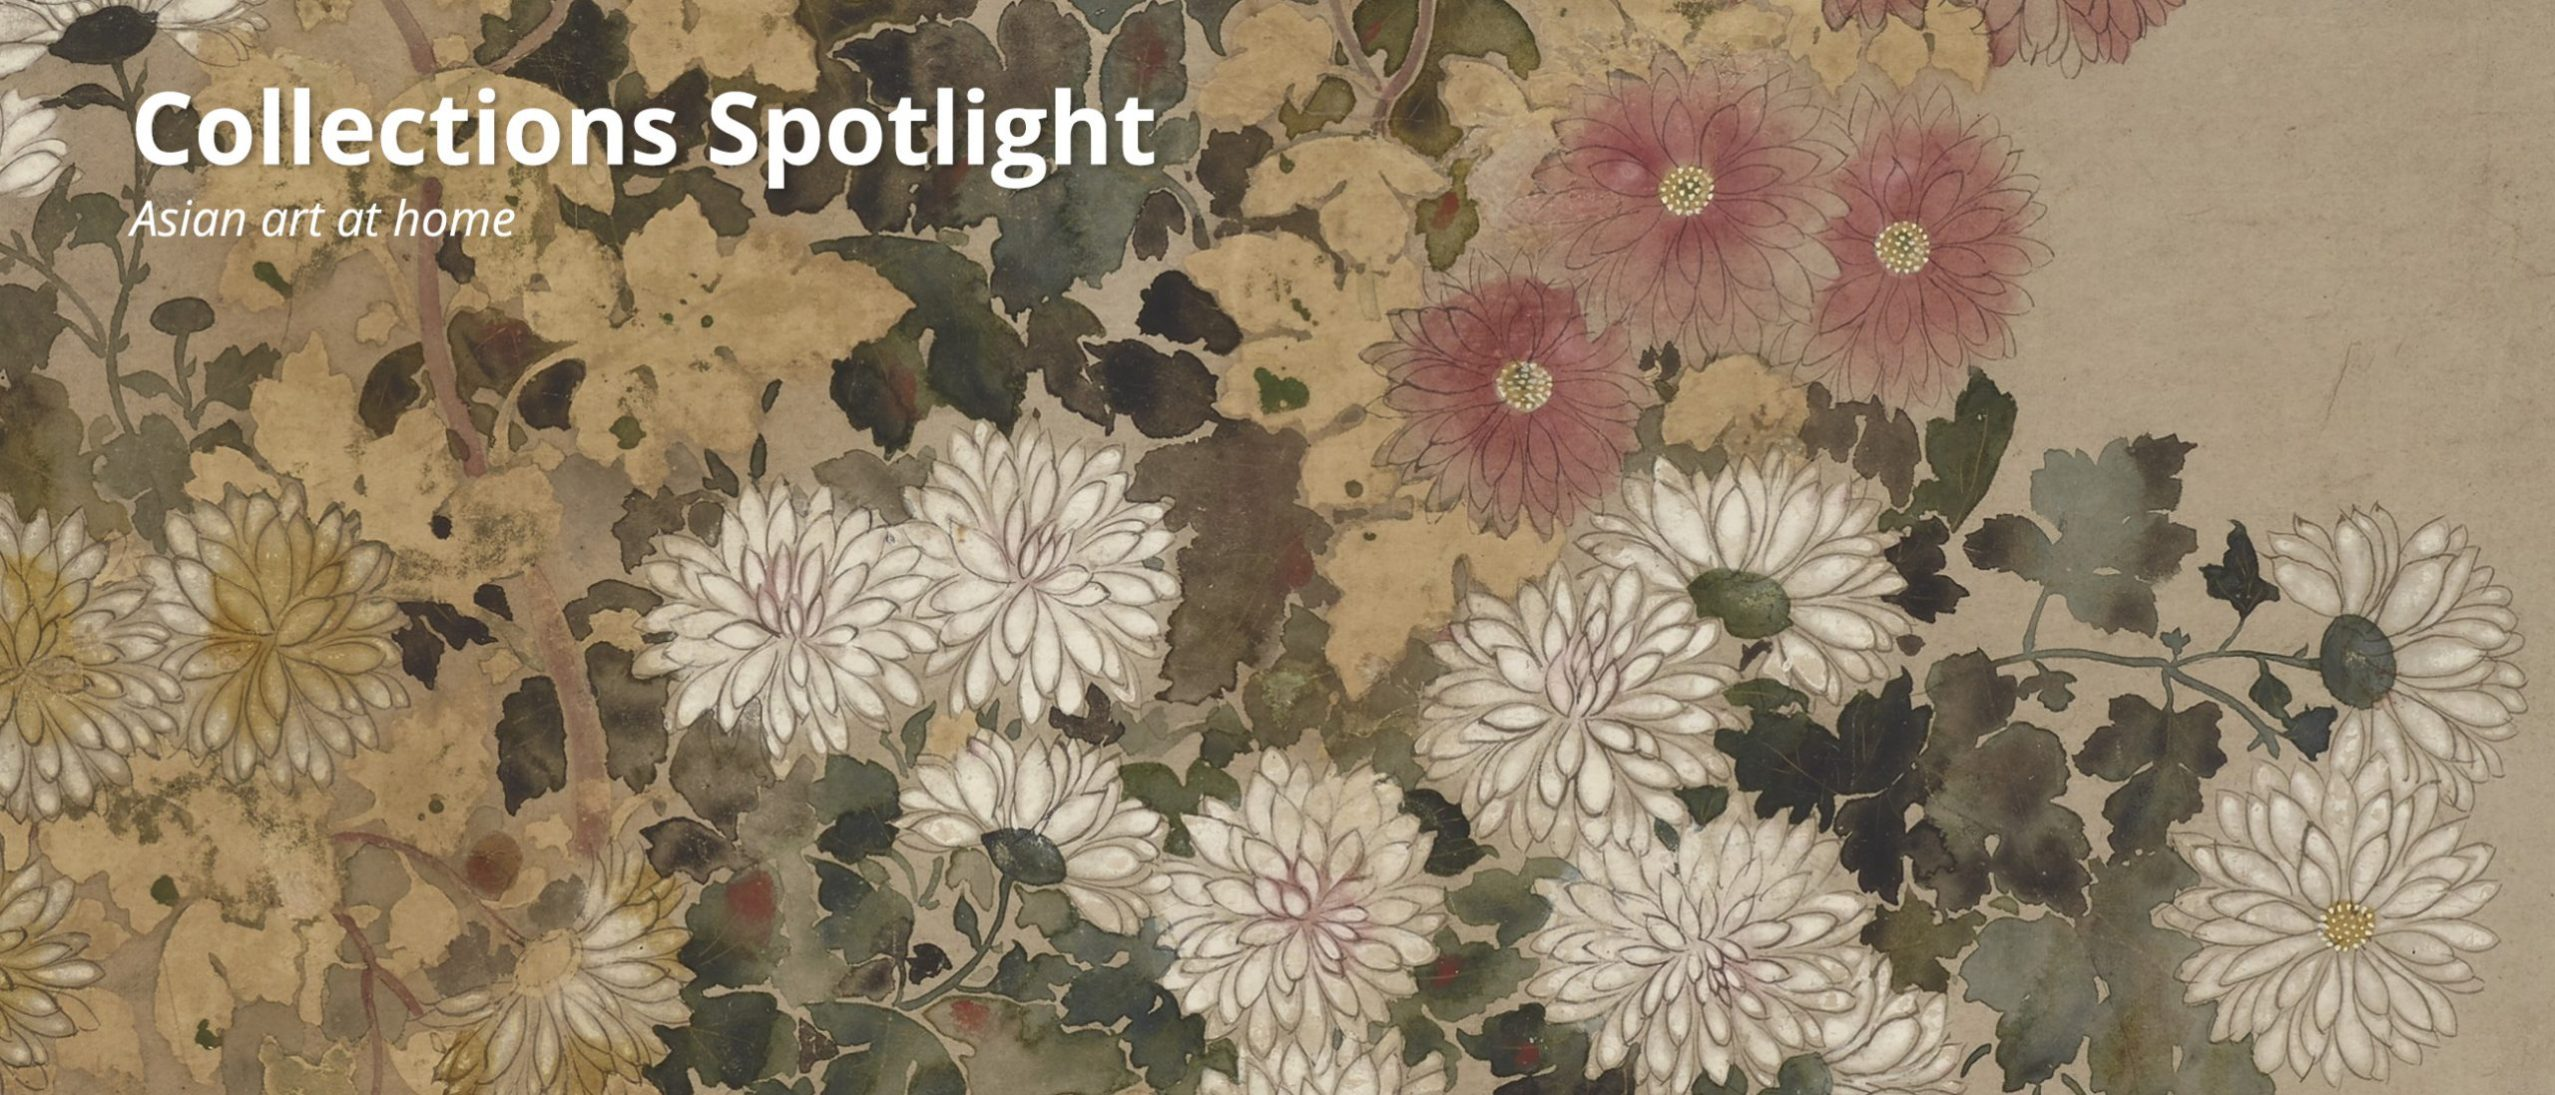 Collections Spotlight - chrysanthemums - detail from a painting of multicolored chrysanthemums